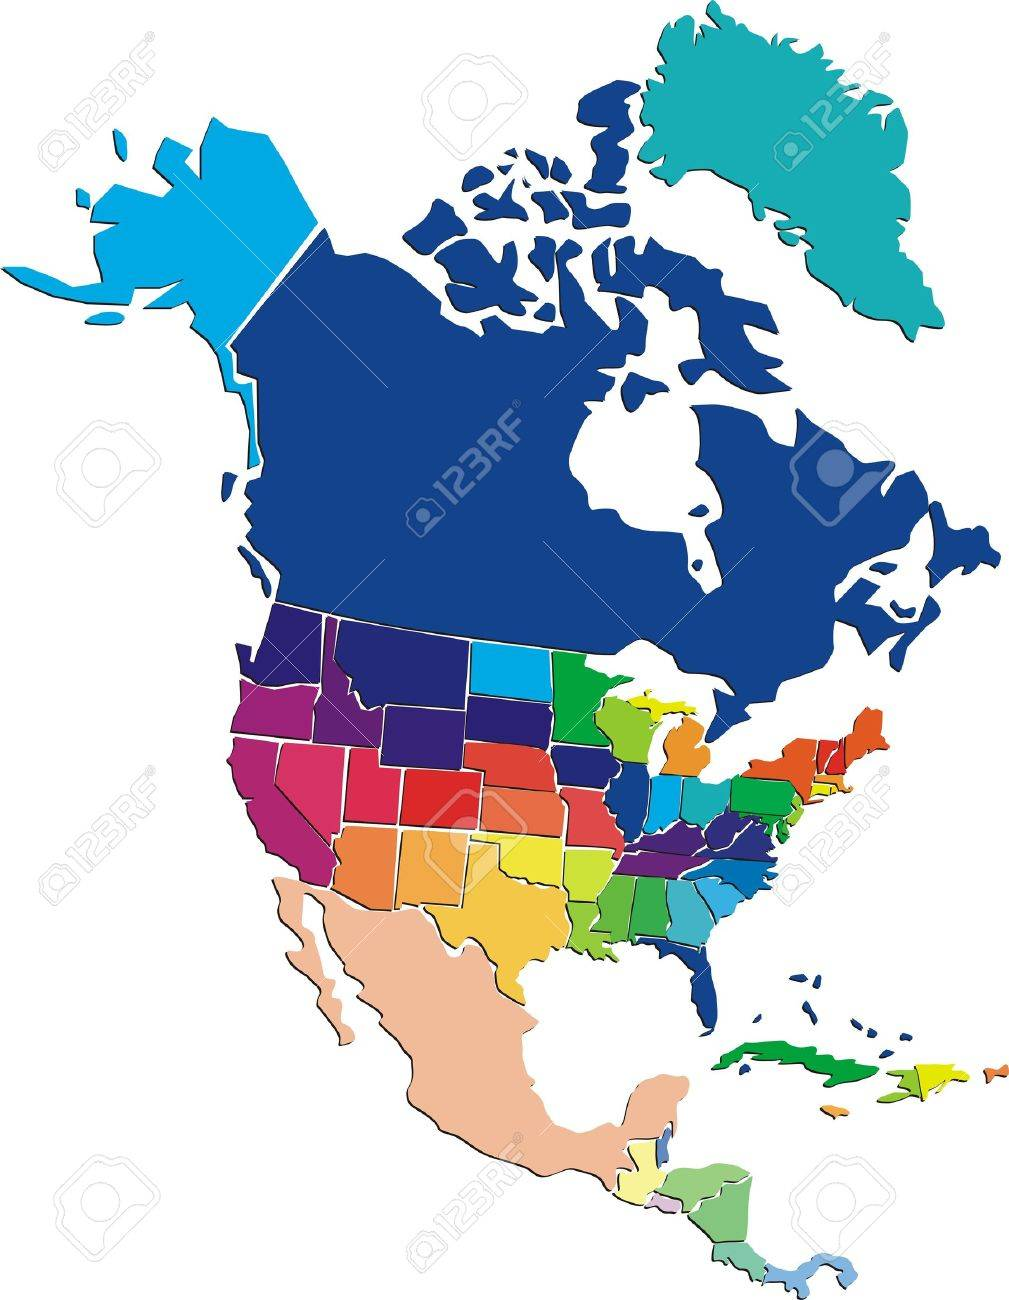 colorful north america map royalty free cliparts vectors and stock rh 123rf com north american free vector map north america vector map download